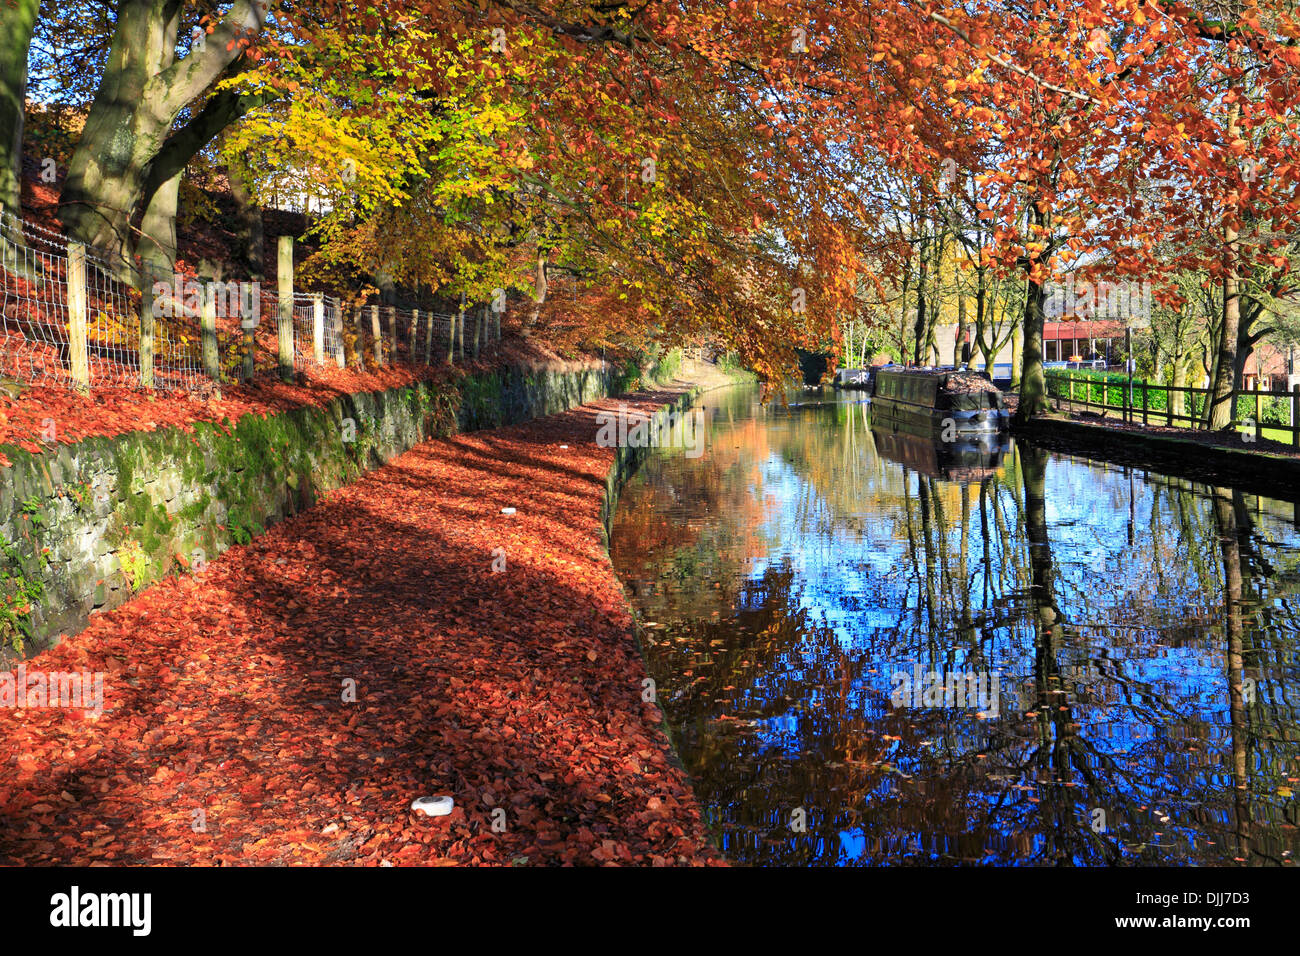 Autumn on the Huddersfield Narrow Canal, Uppermill, Saddleworth,  Oldham, Greater Manchester, Lancashire, England, UK. - Stock Image